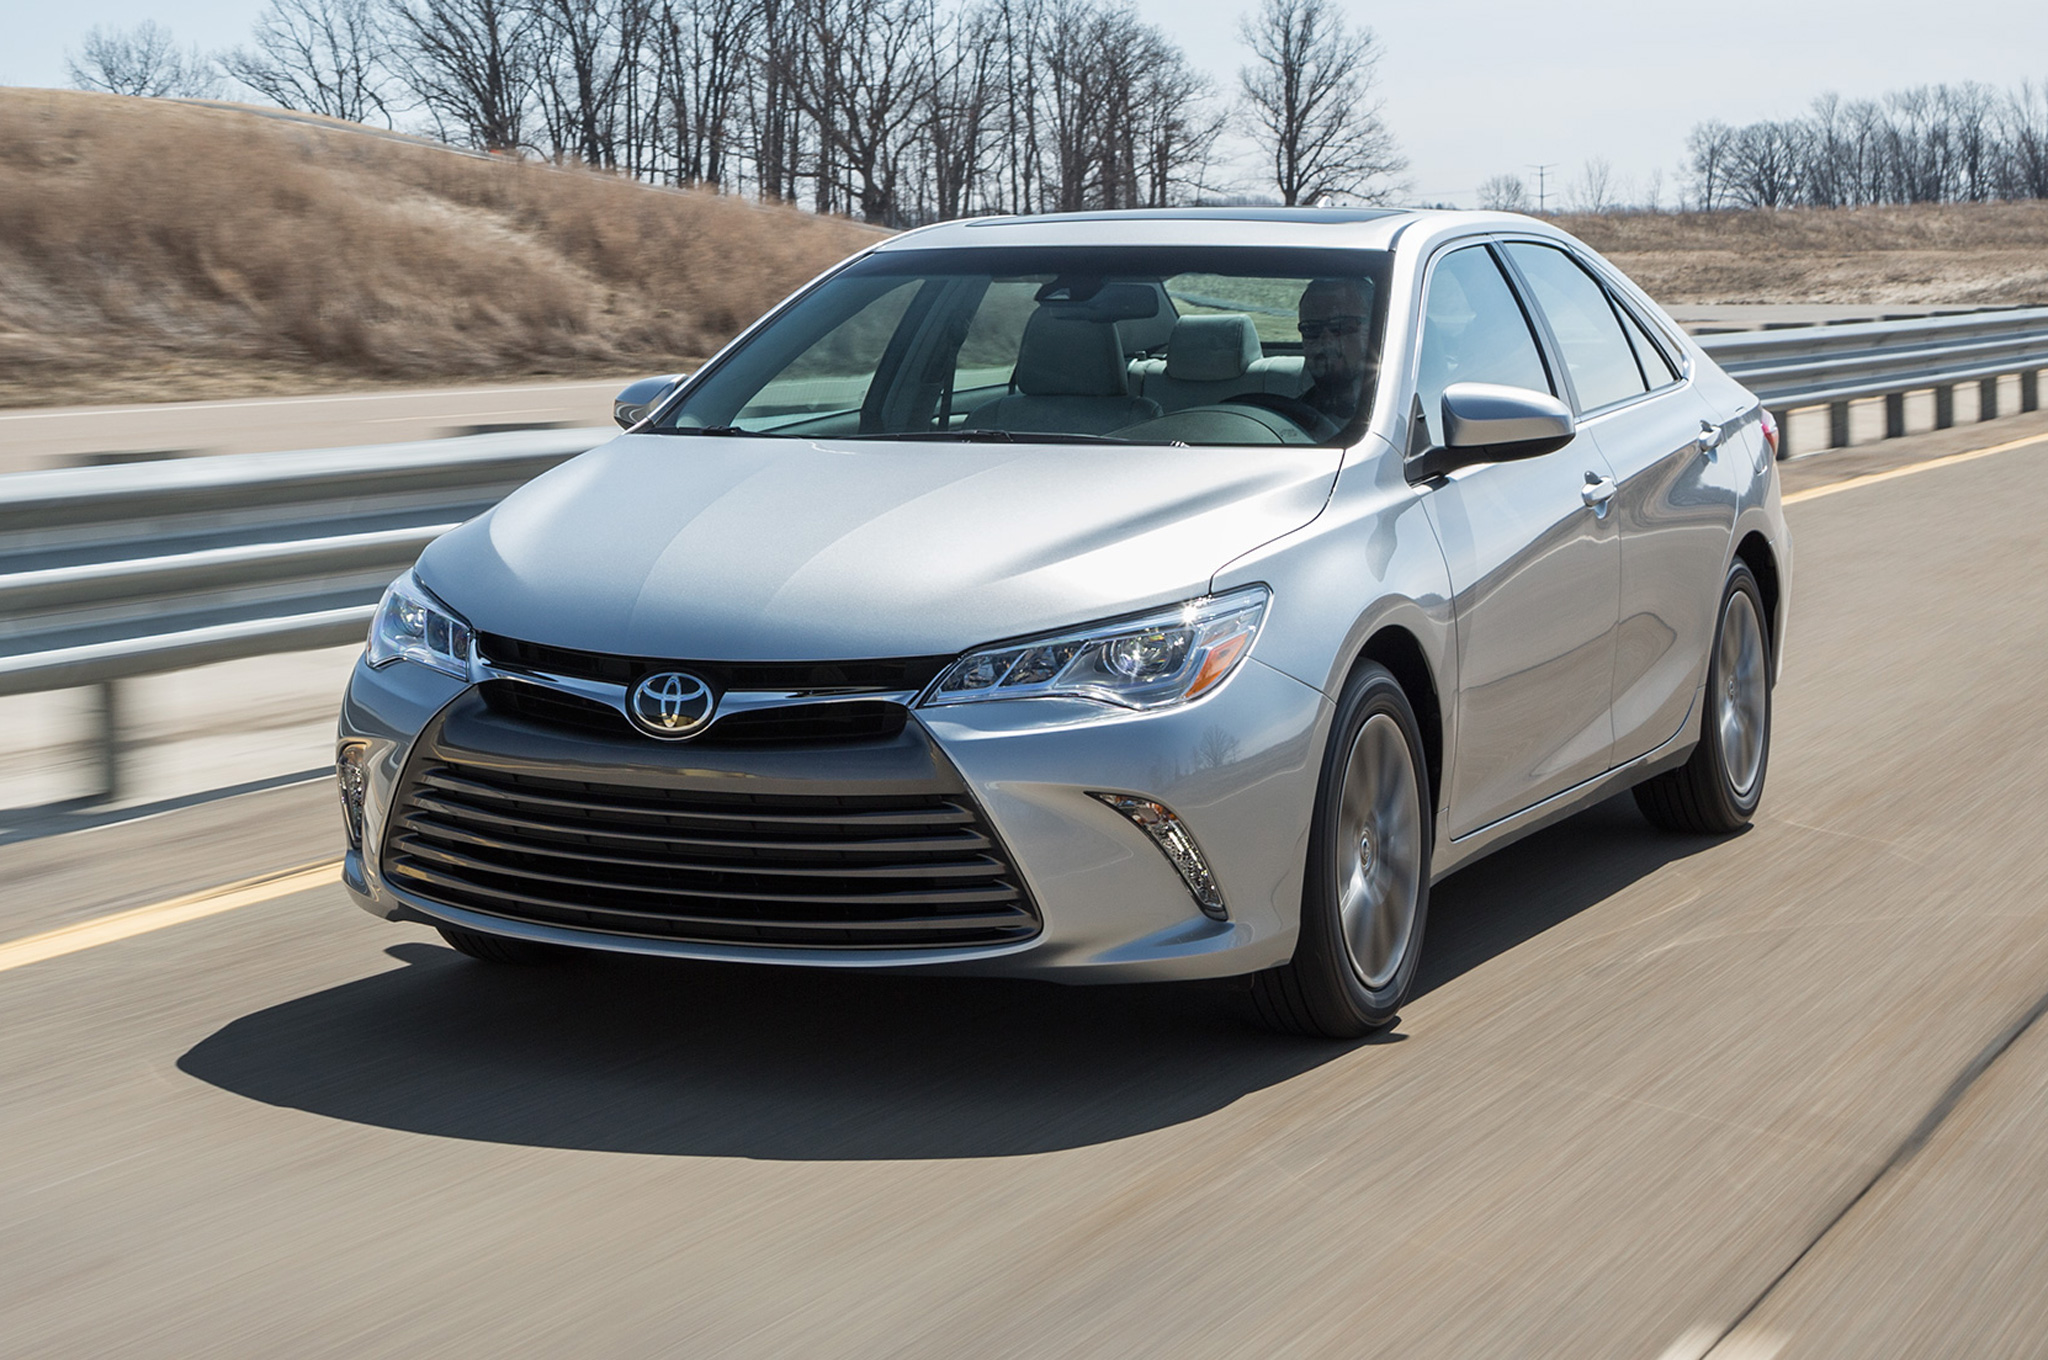 Facelift Cars - 2015 Toyota Camry XLE front-side-motion-view